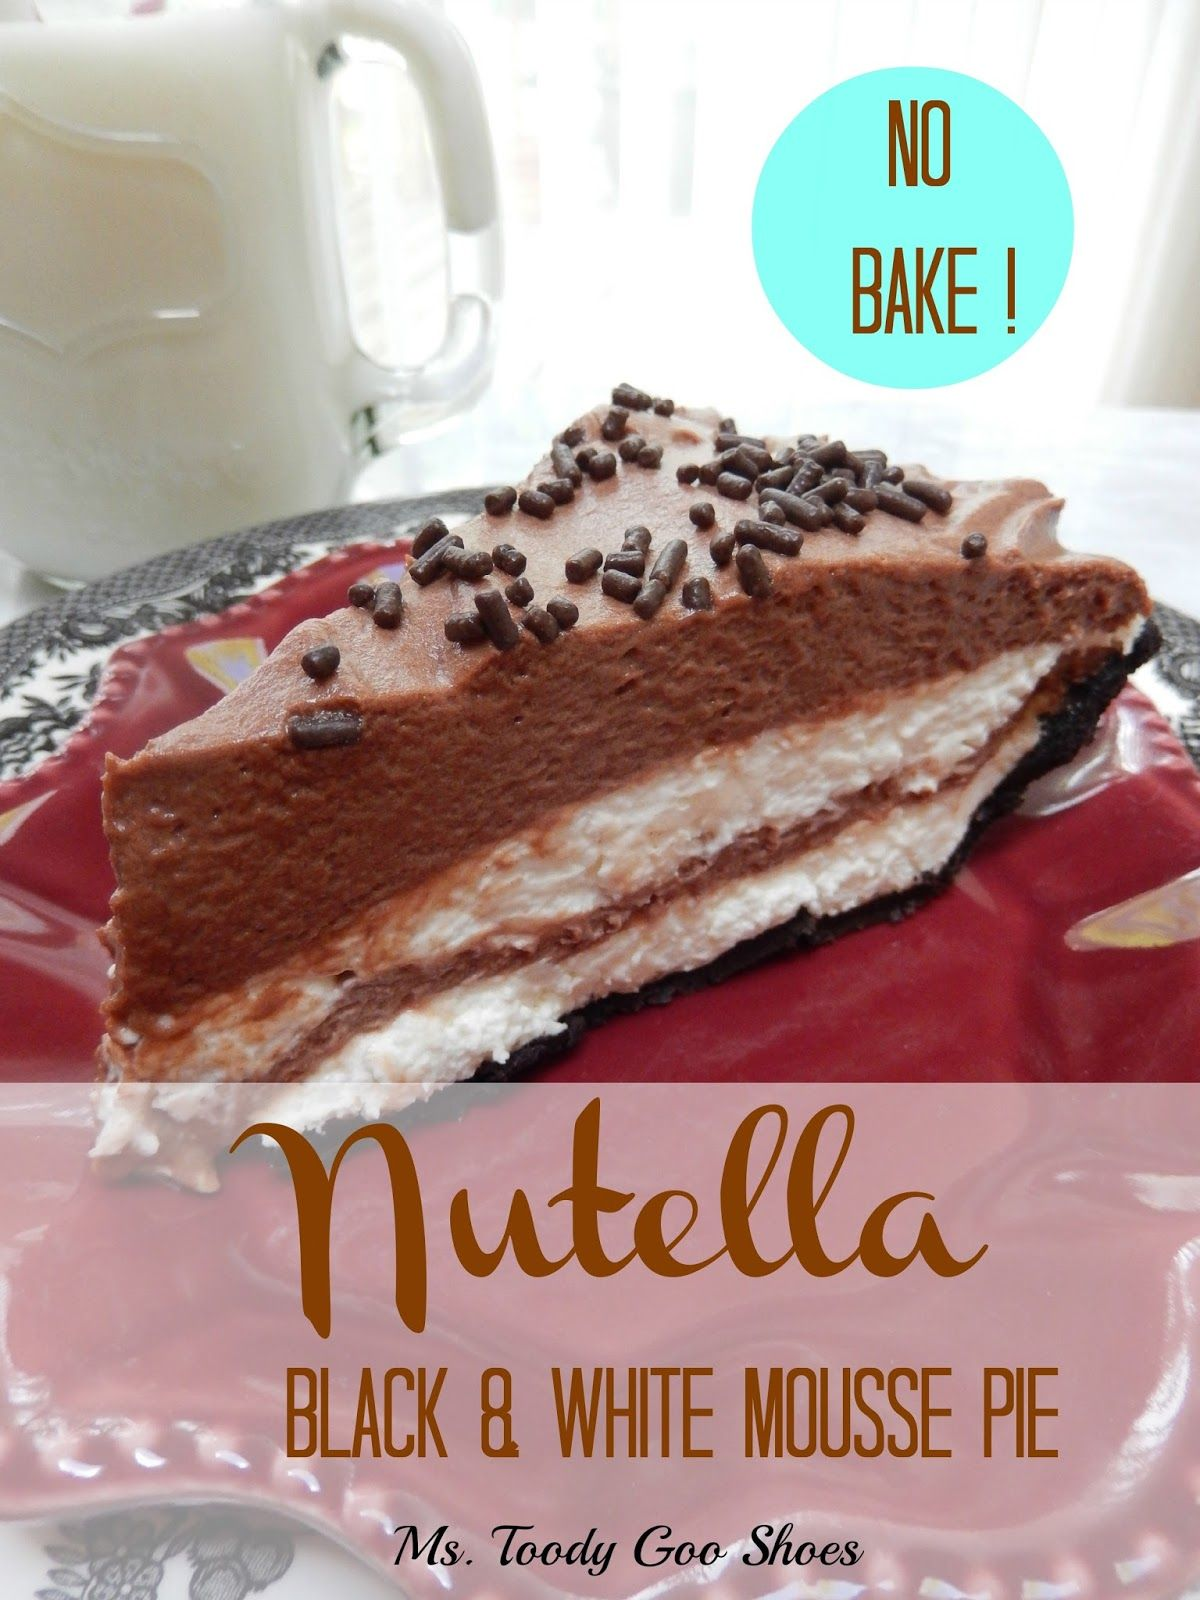 Nutella Black & White Mousse Pie: 5 ingredients, 5 steps, no baking! --- Ms. Toody Goo Shoes